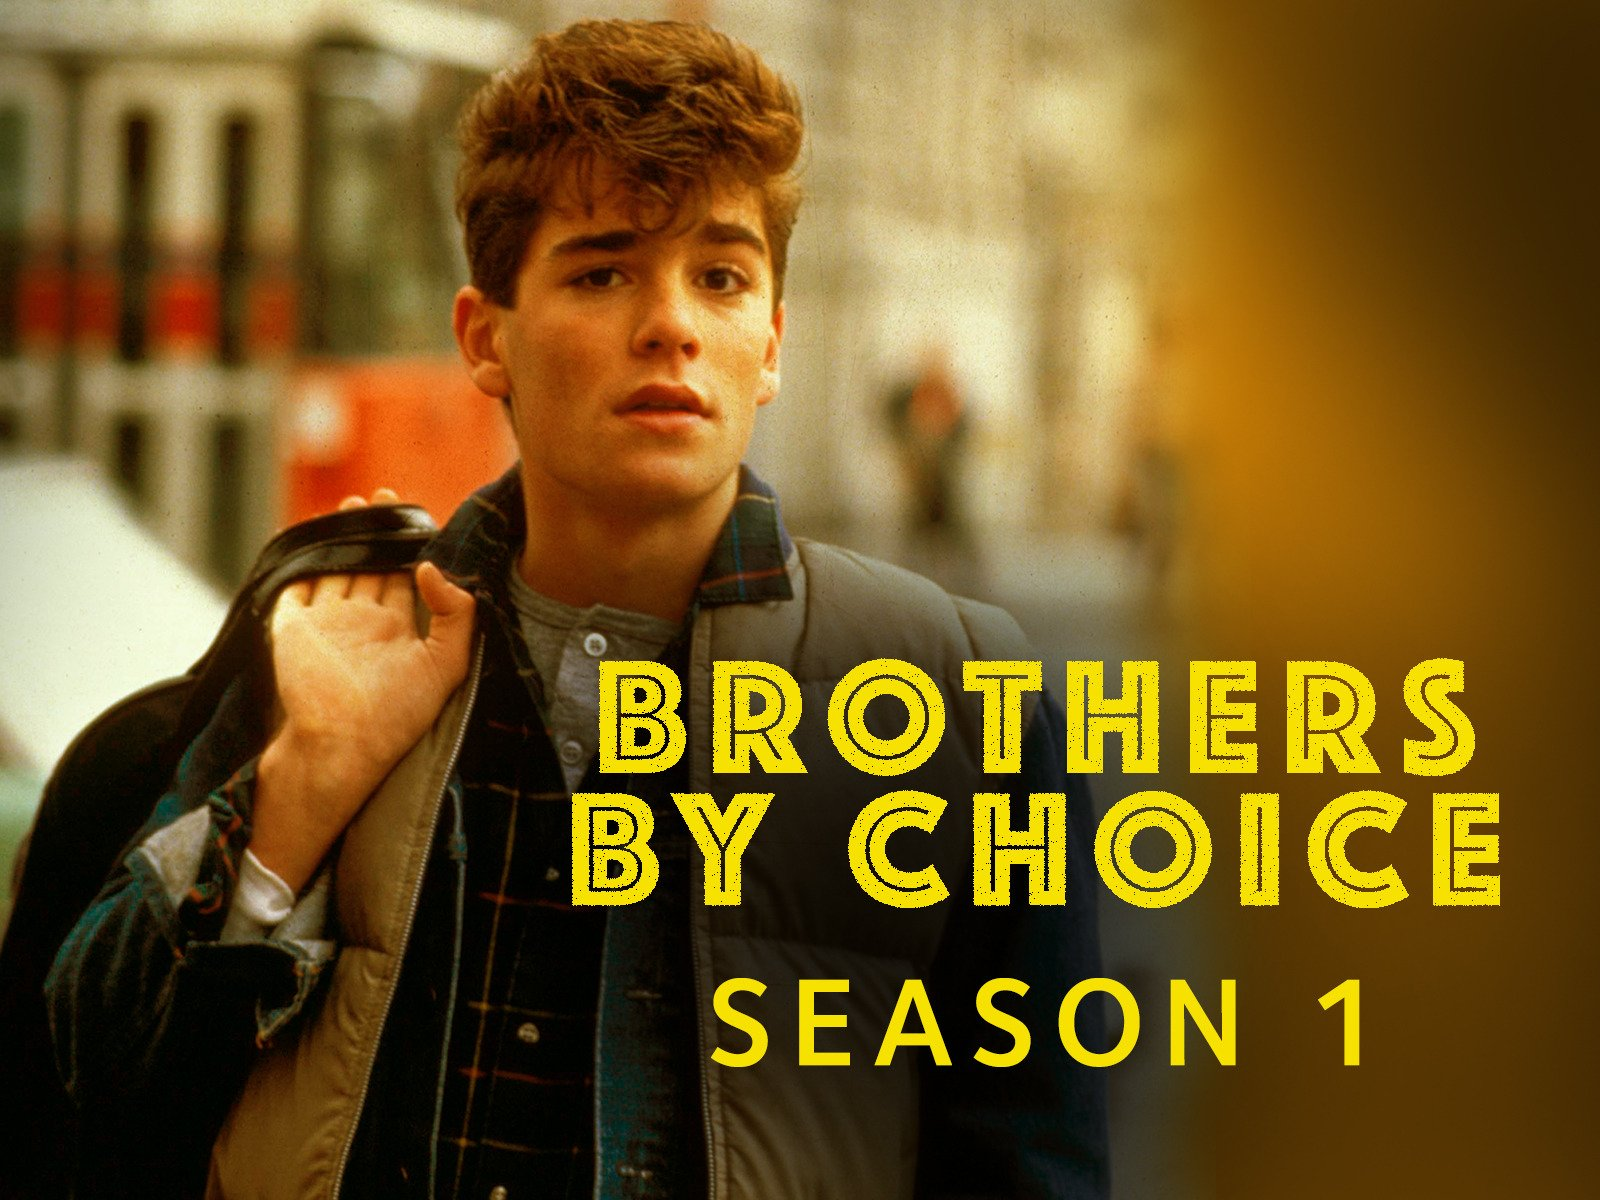 Brothers by Choice - Season 1